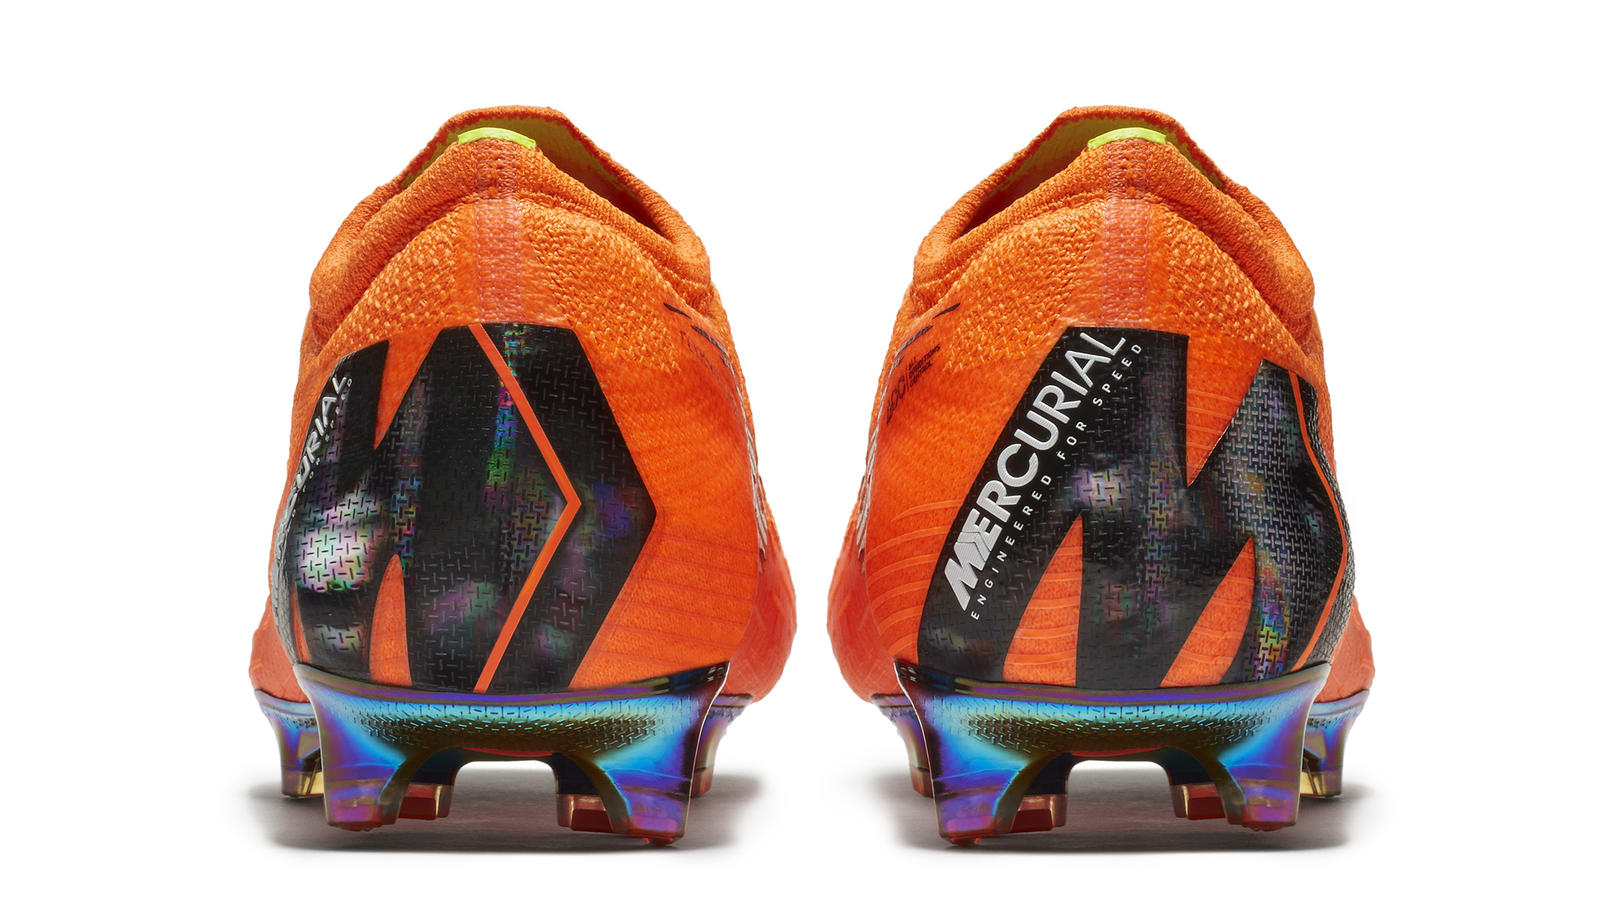 41df816b8 Introducing the Mercurial Superfly and Vapor 360: Fast By Nature ...